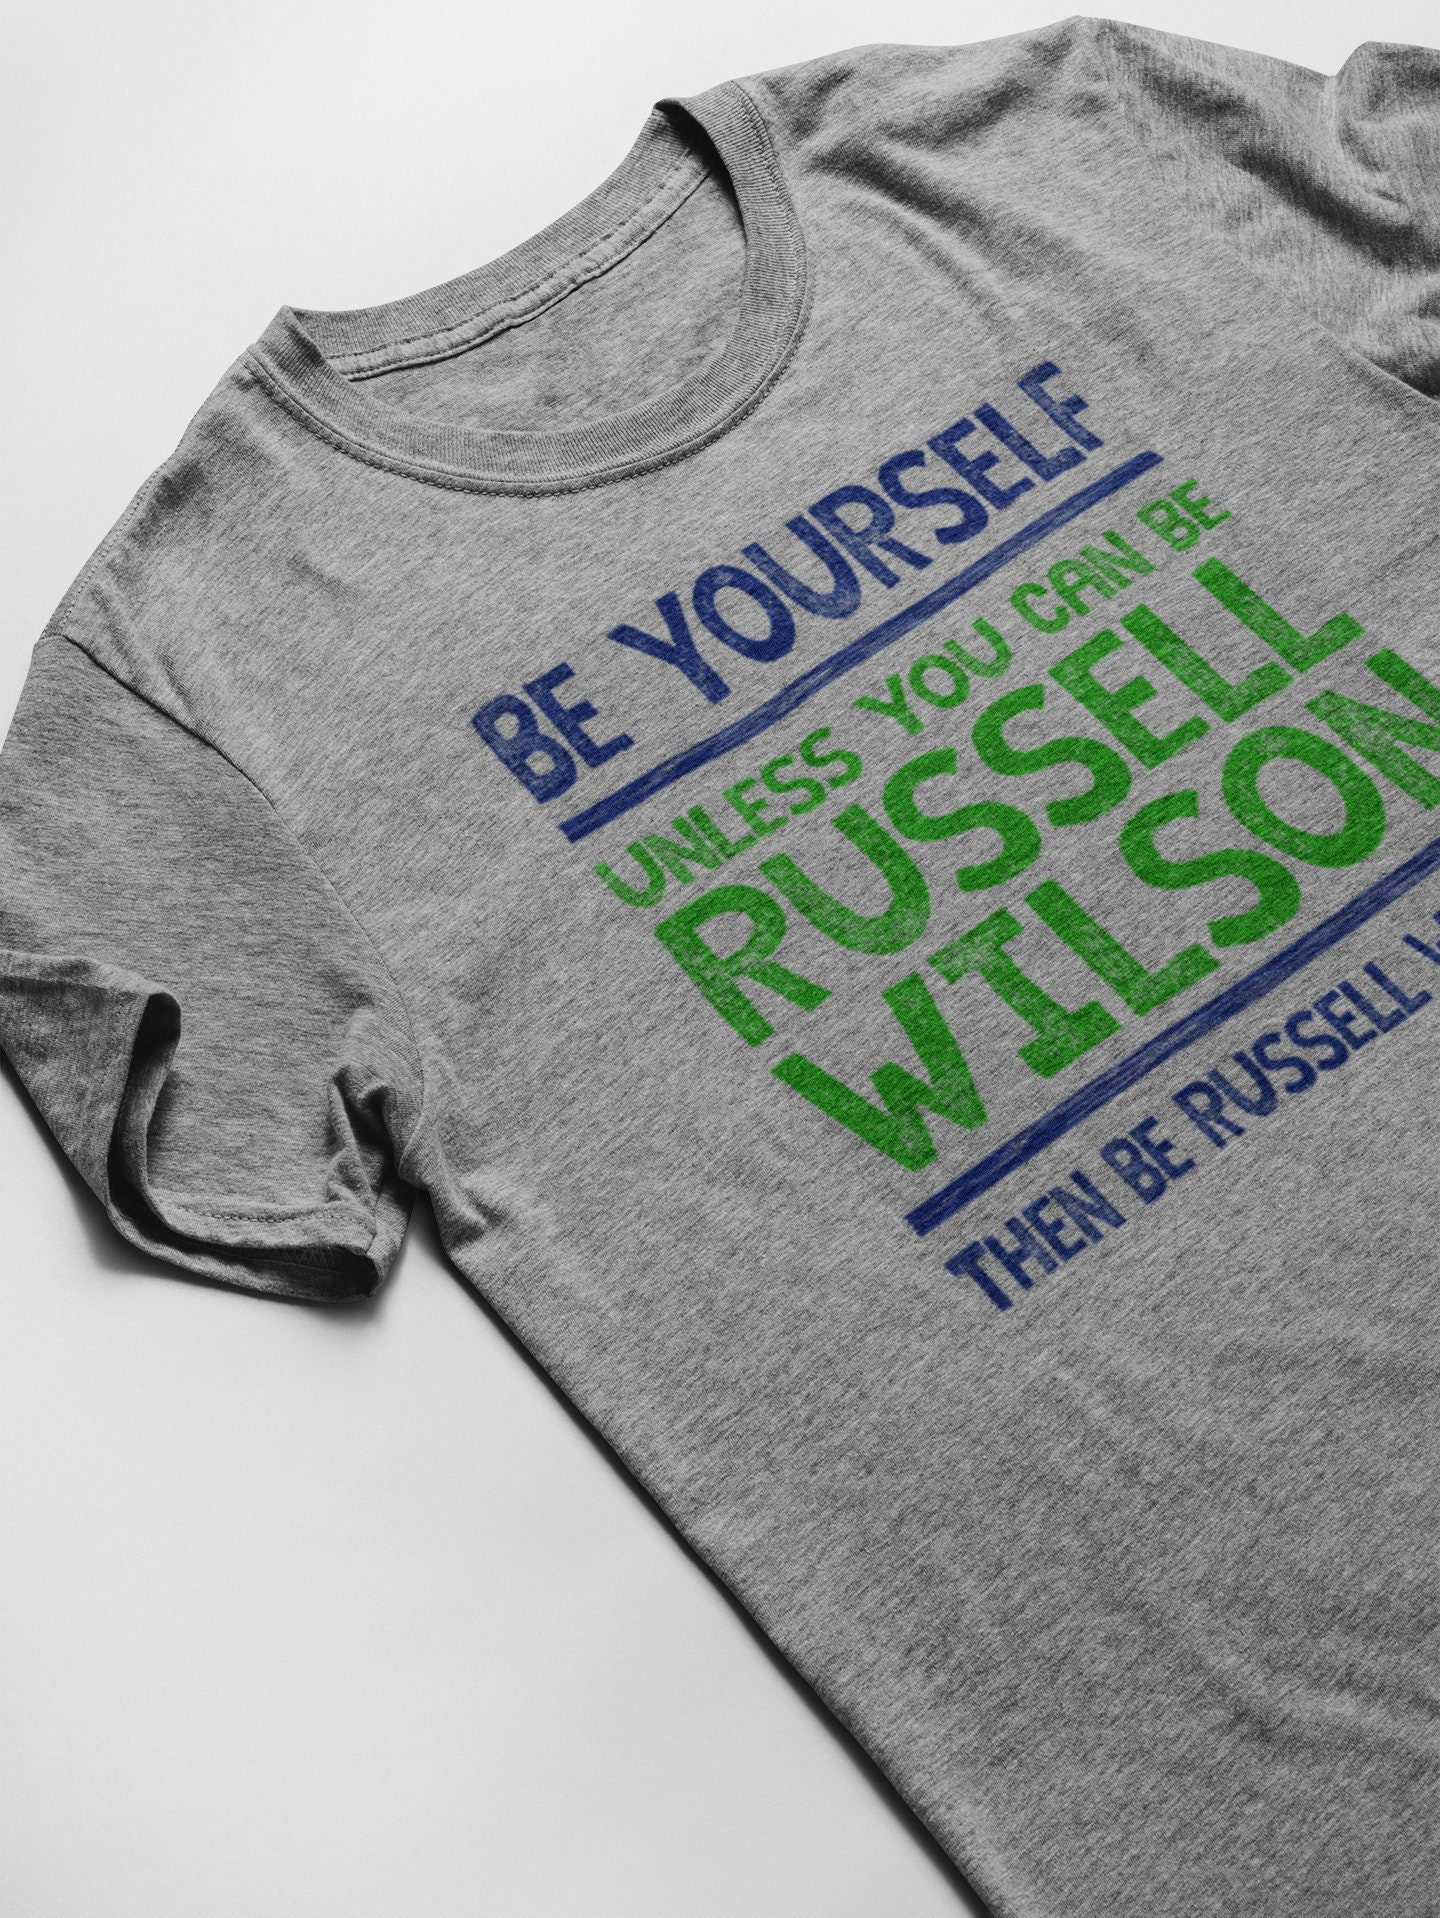 Russell Wilson Be Yourself Funny Football T-Shirt...Seattle Seahawks Quarterback Jersey Tee